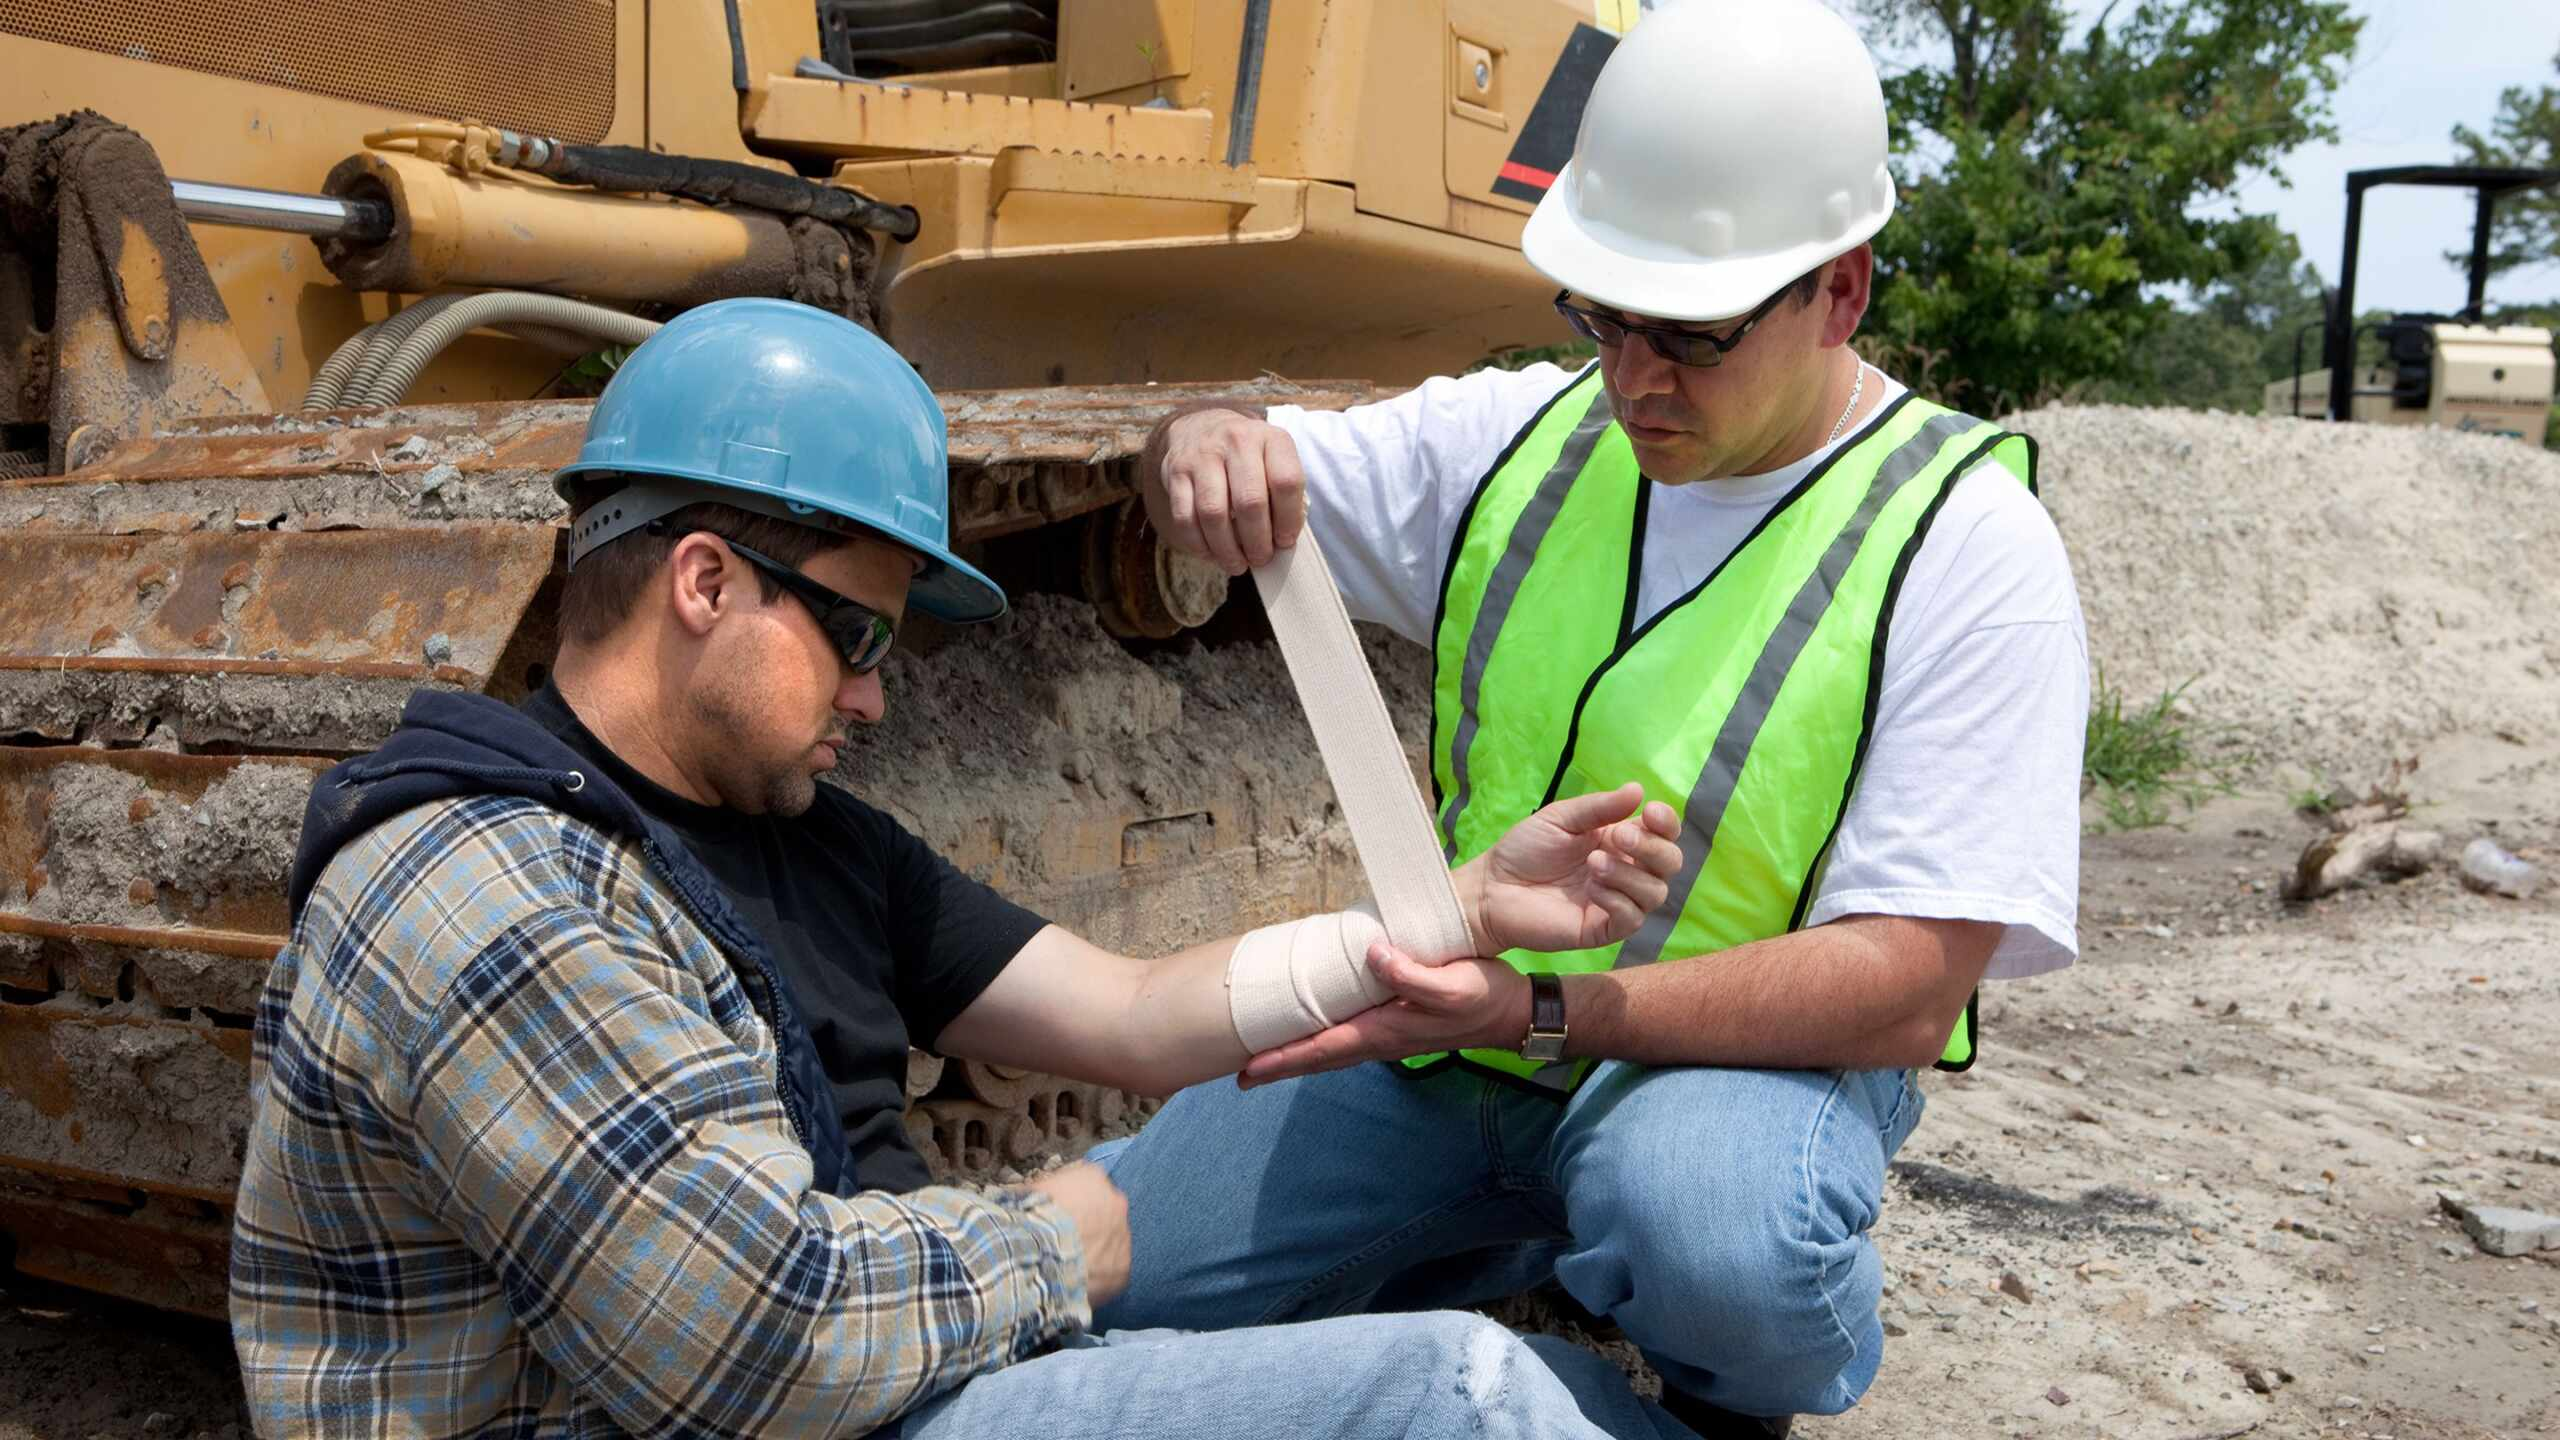 Earnings in Workers Compensation